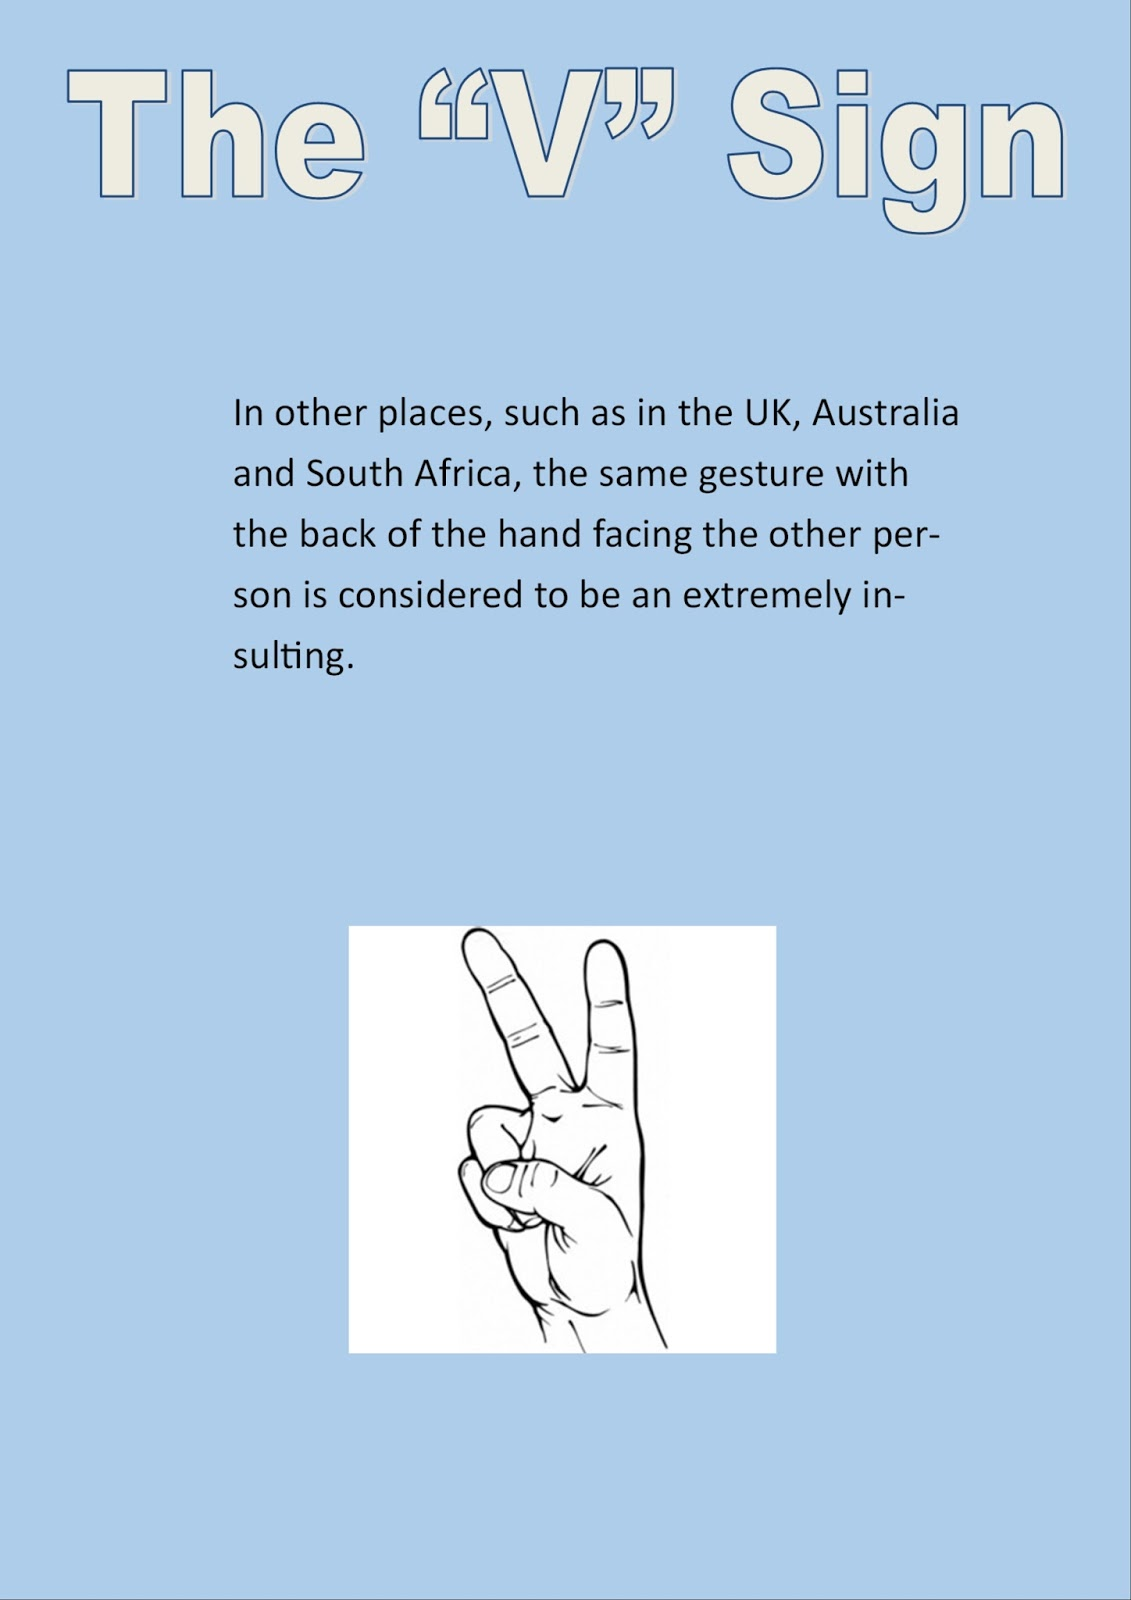 Hand Gestures And Why We Use Them Hand Gestures And Why We Use Them